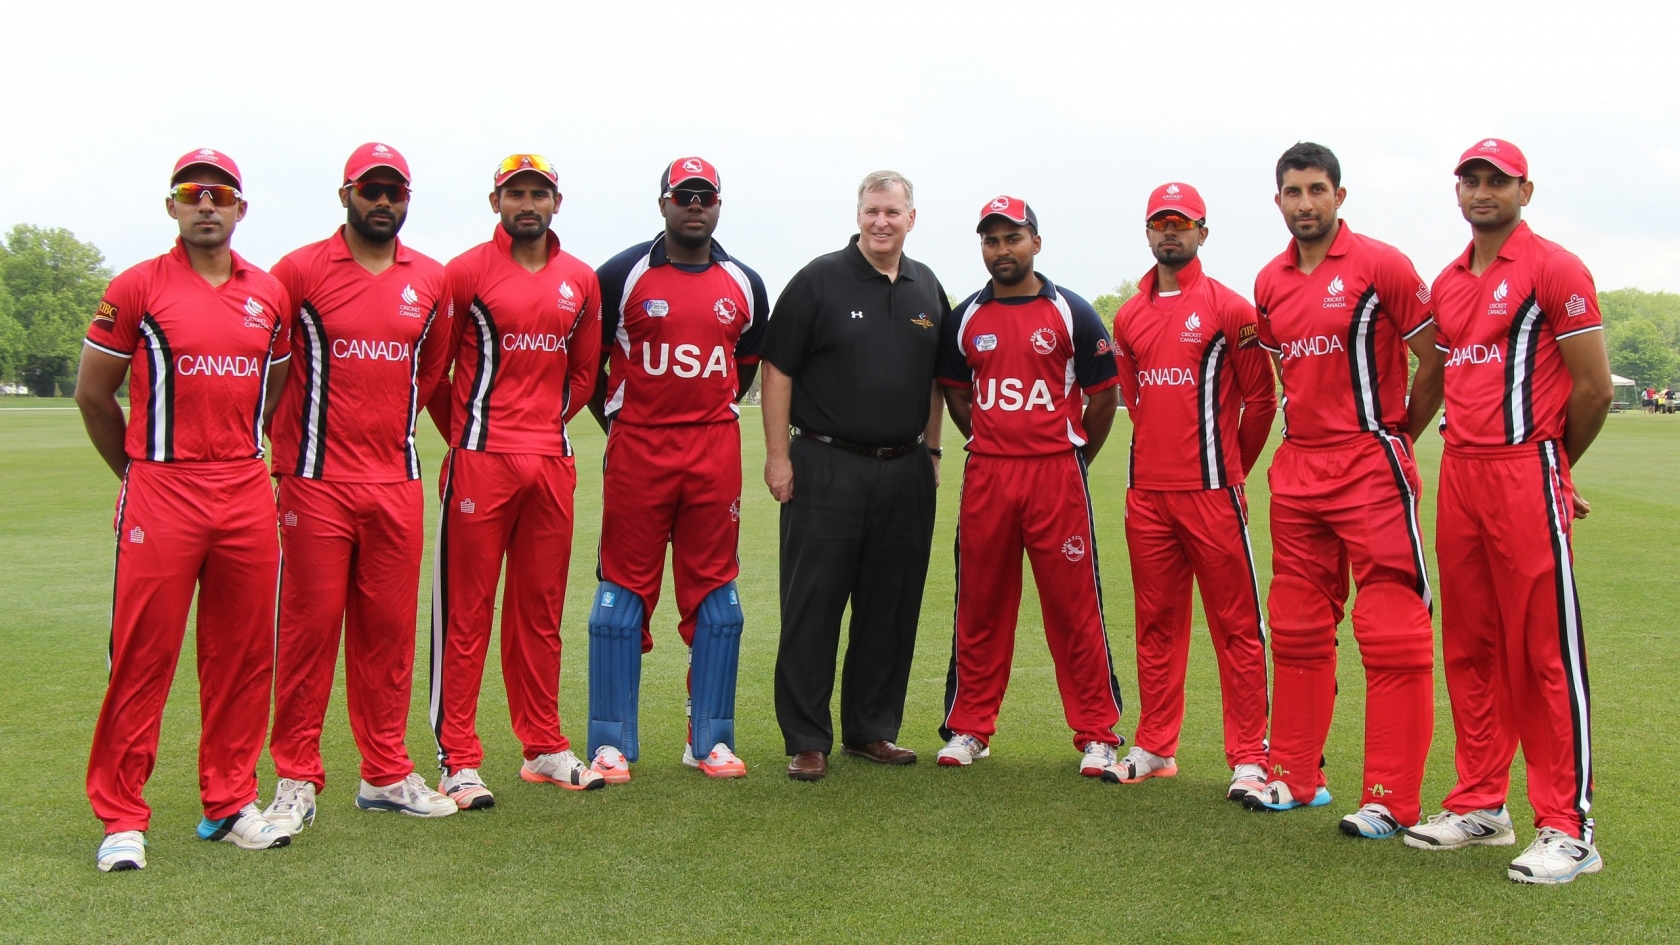 Cricket Canada for 1680 x 945 HDTV resolution